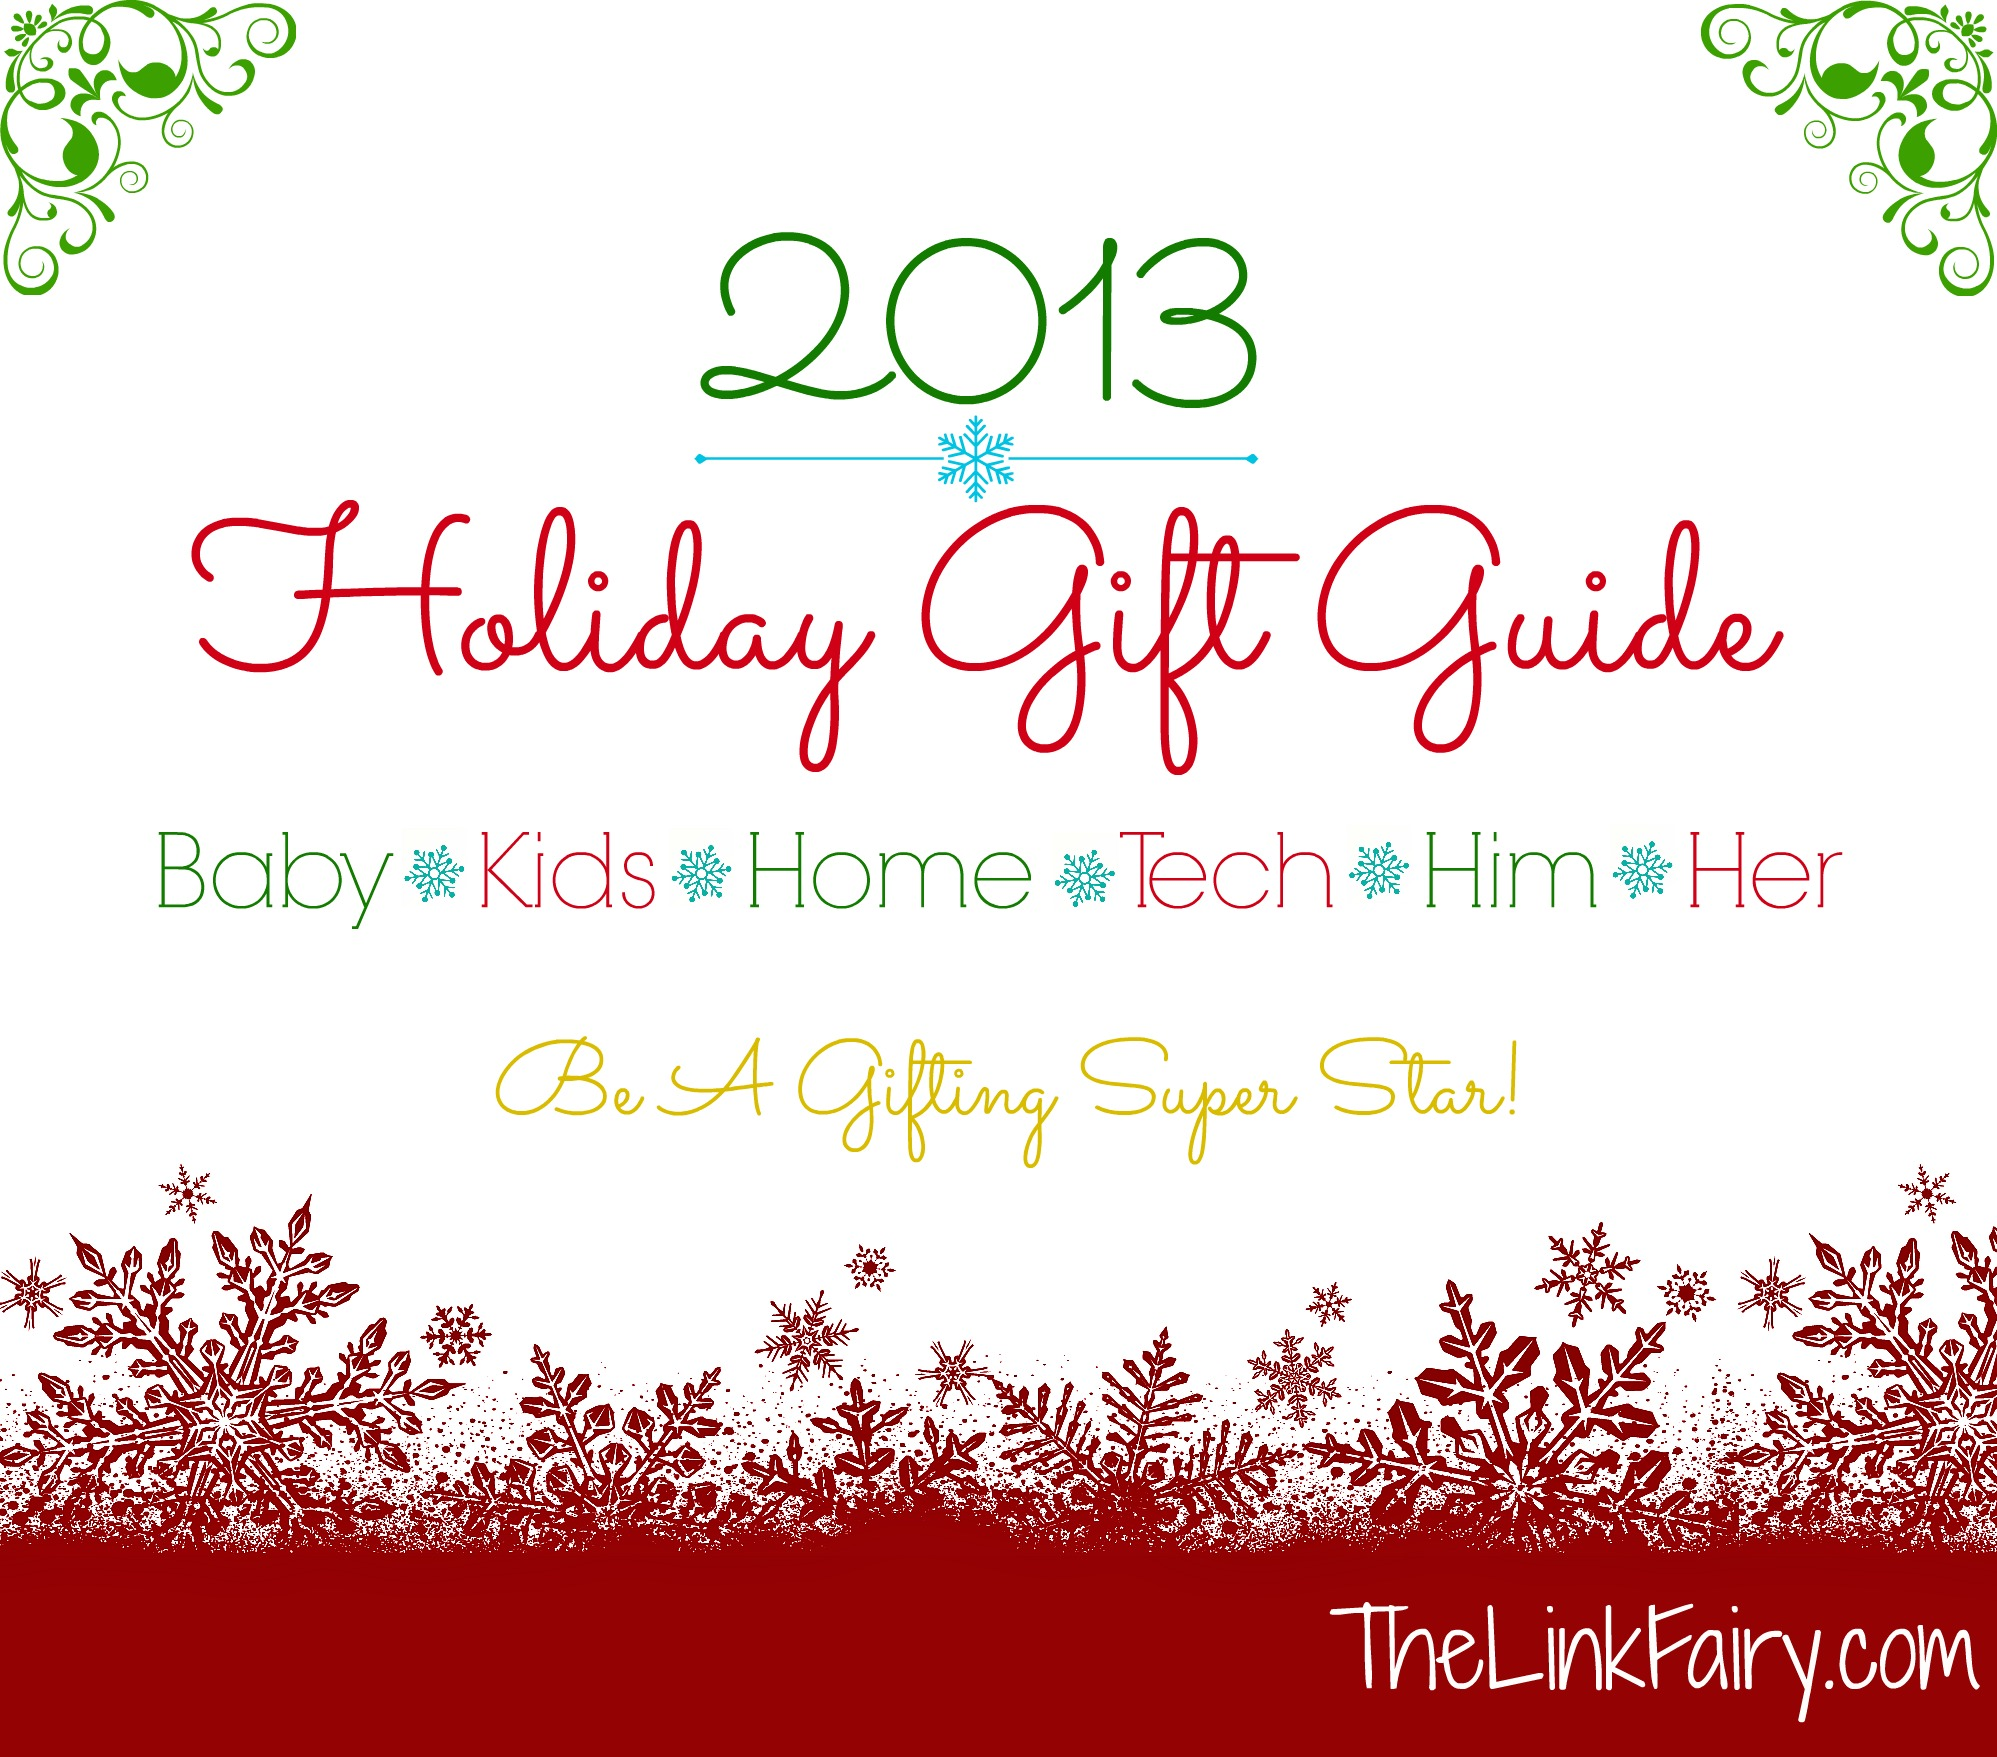 Link Fairy 2013 Holiday Gift Guide